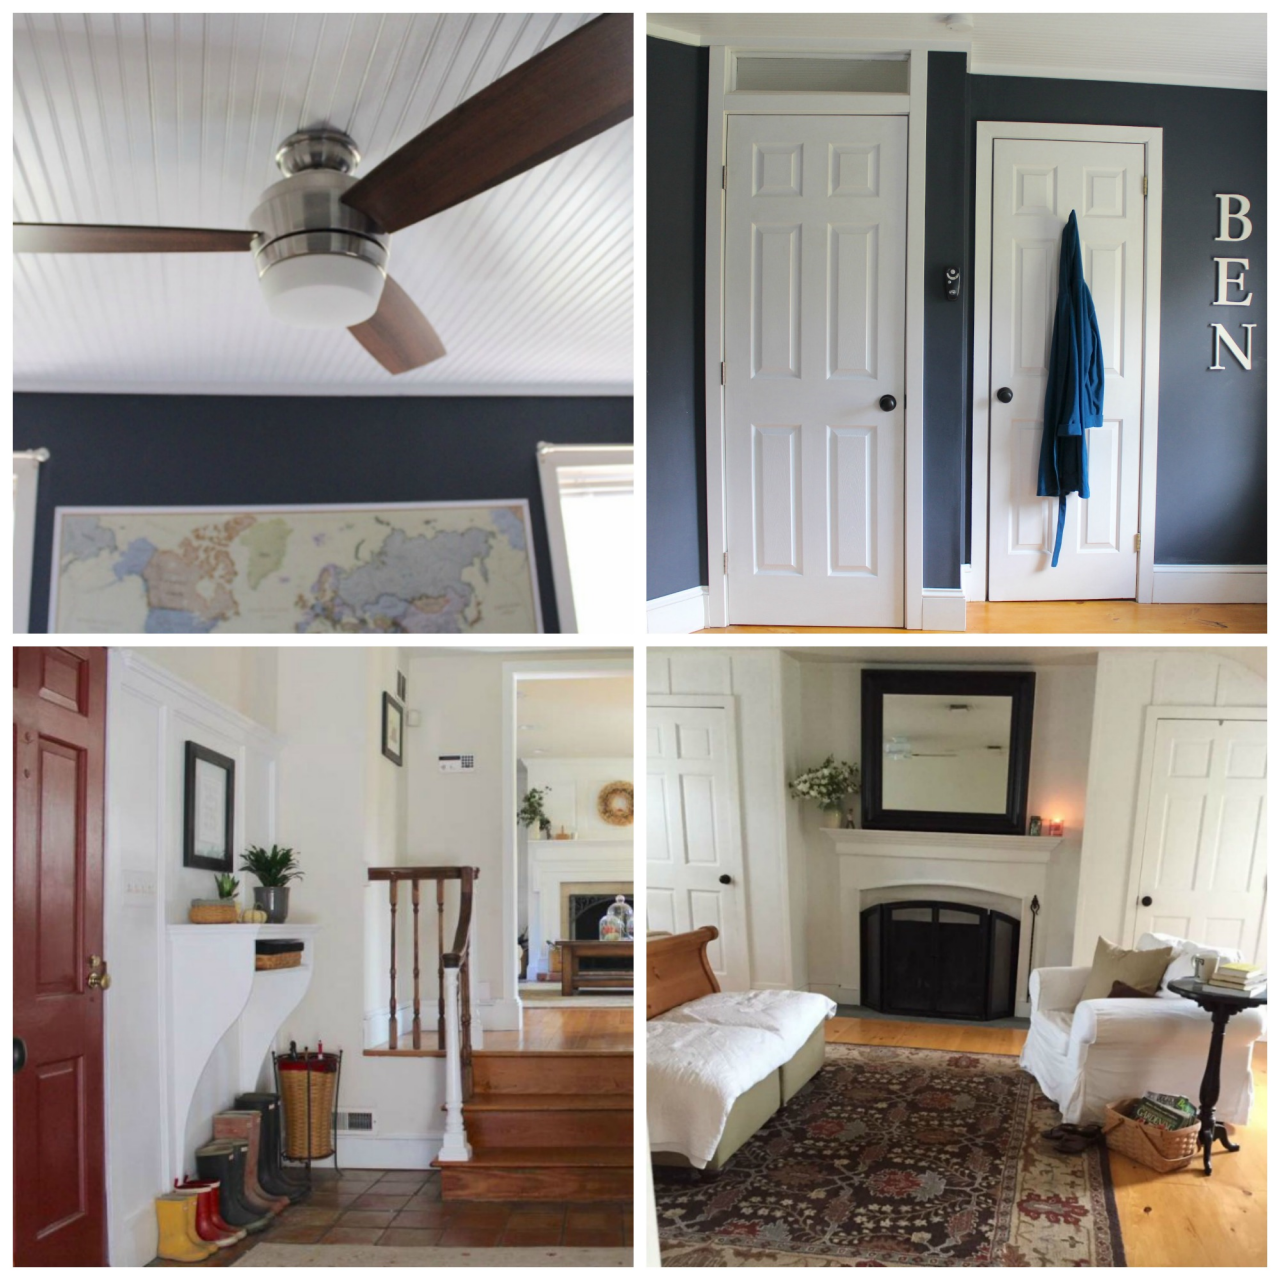 4 Diy House Projects To Give Your Home More Farmhouse